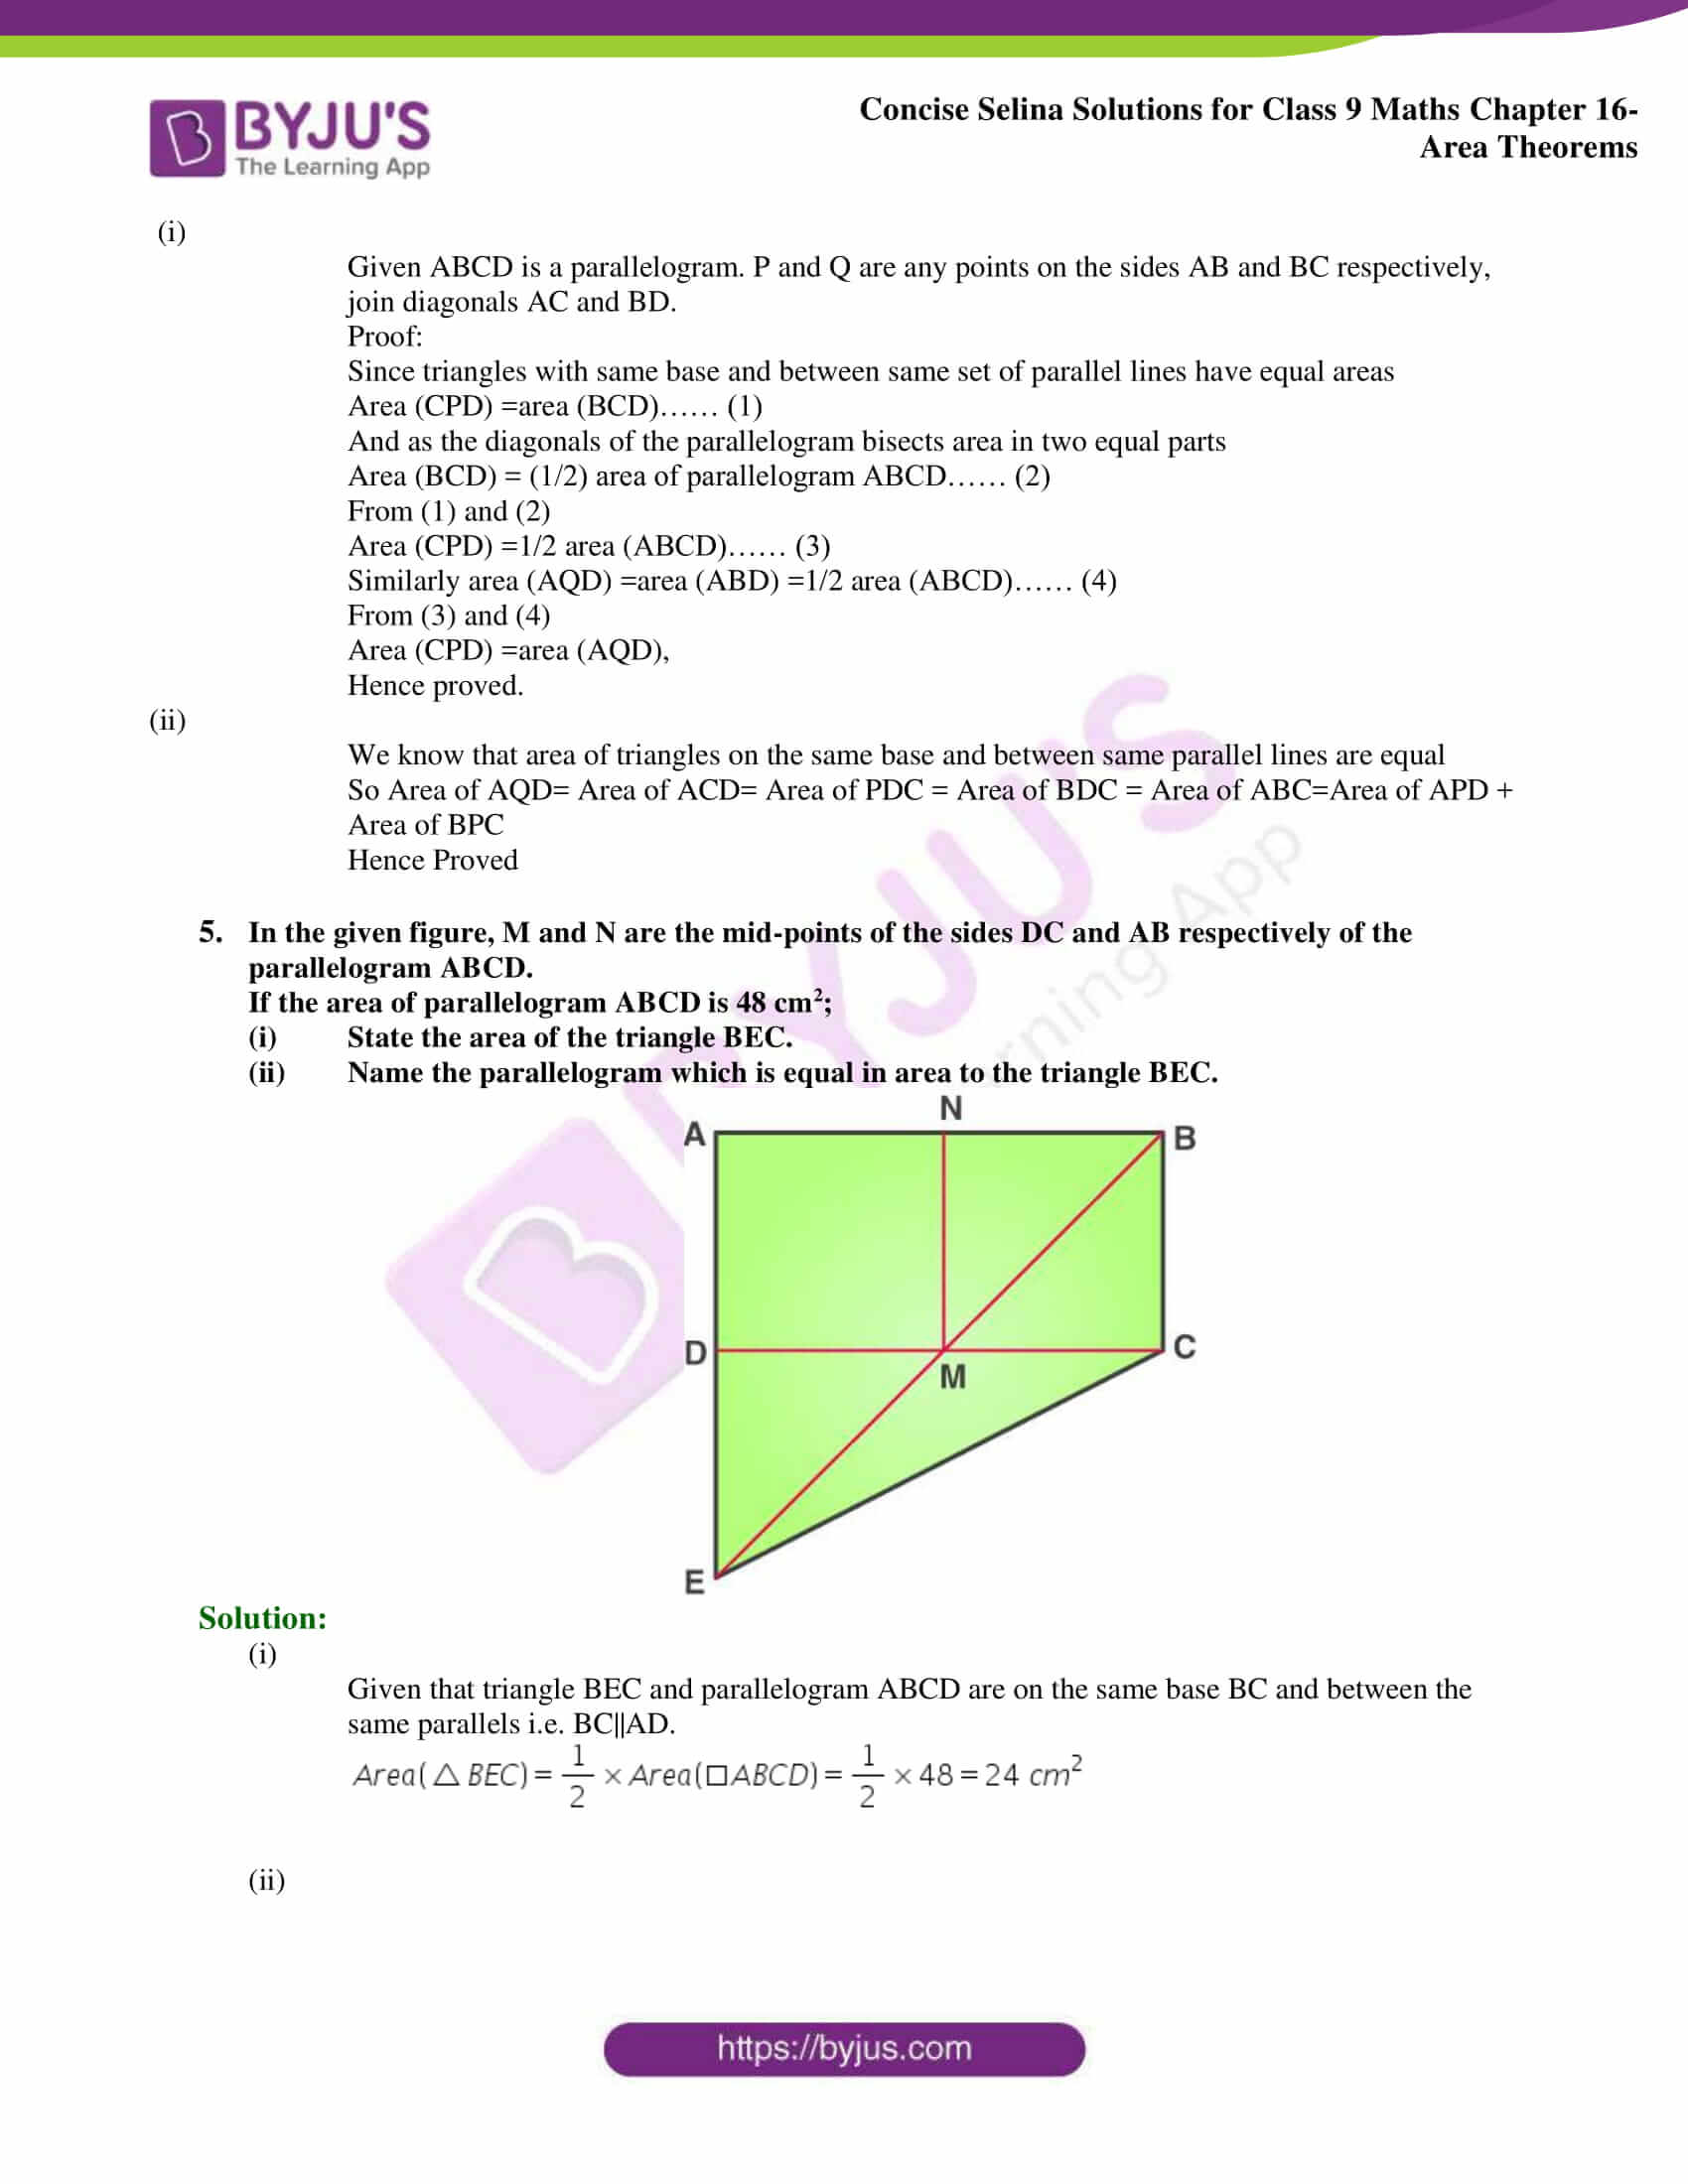 Concise Selina Solutions Class 9 Maths Chapter 16 Area Theorems part 04